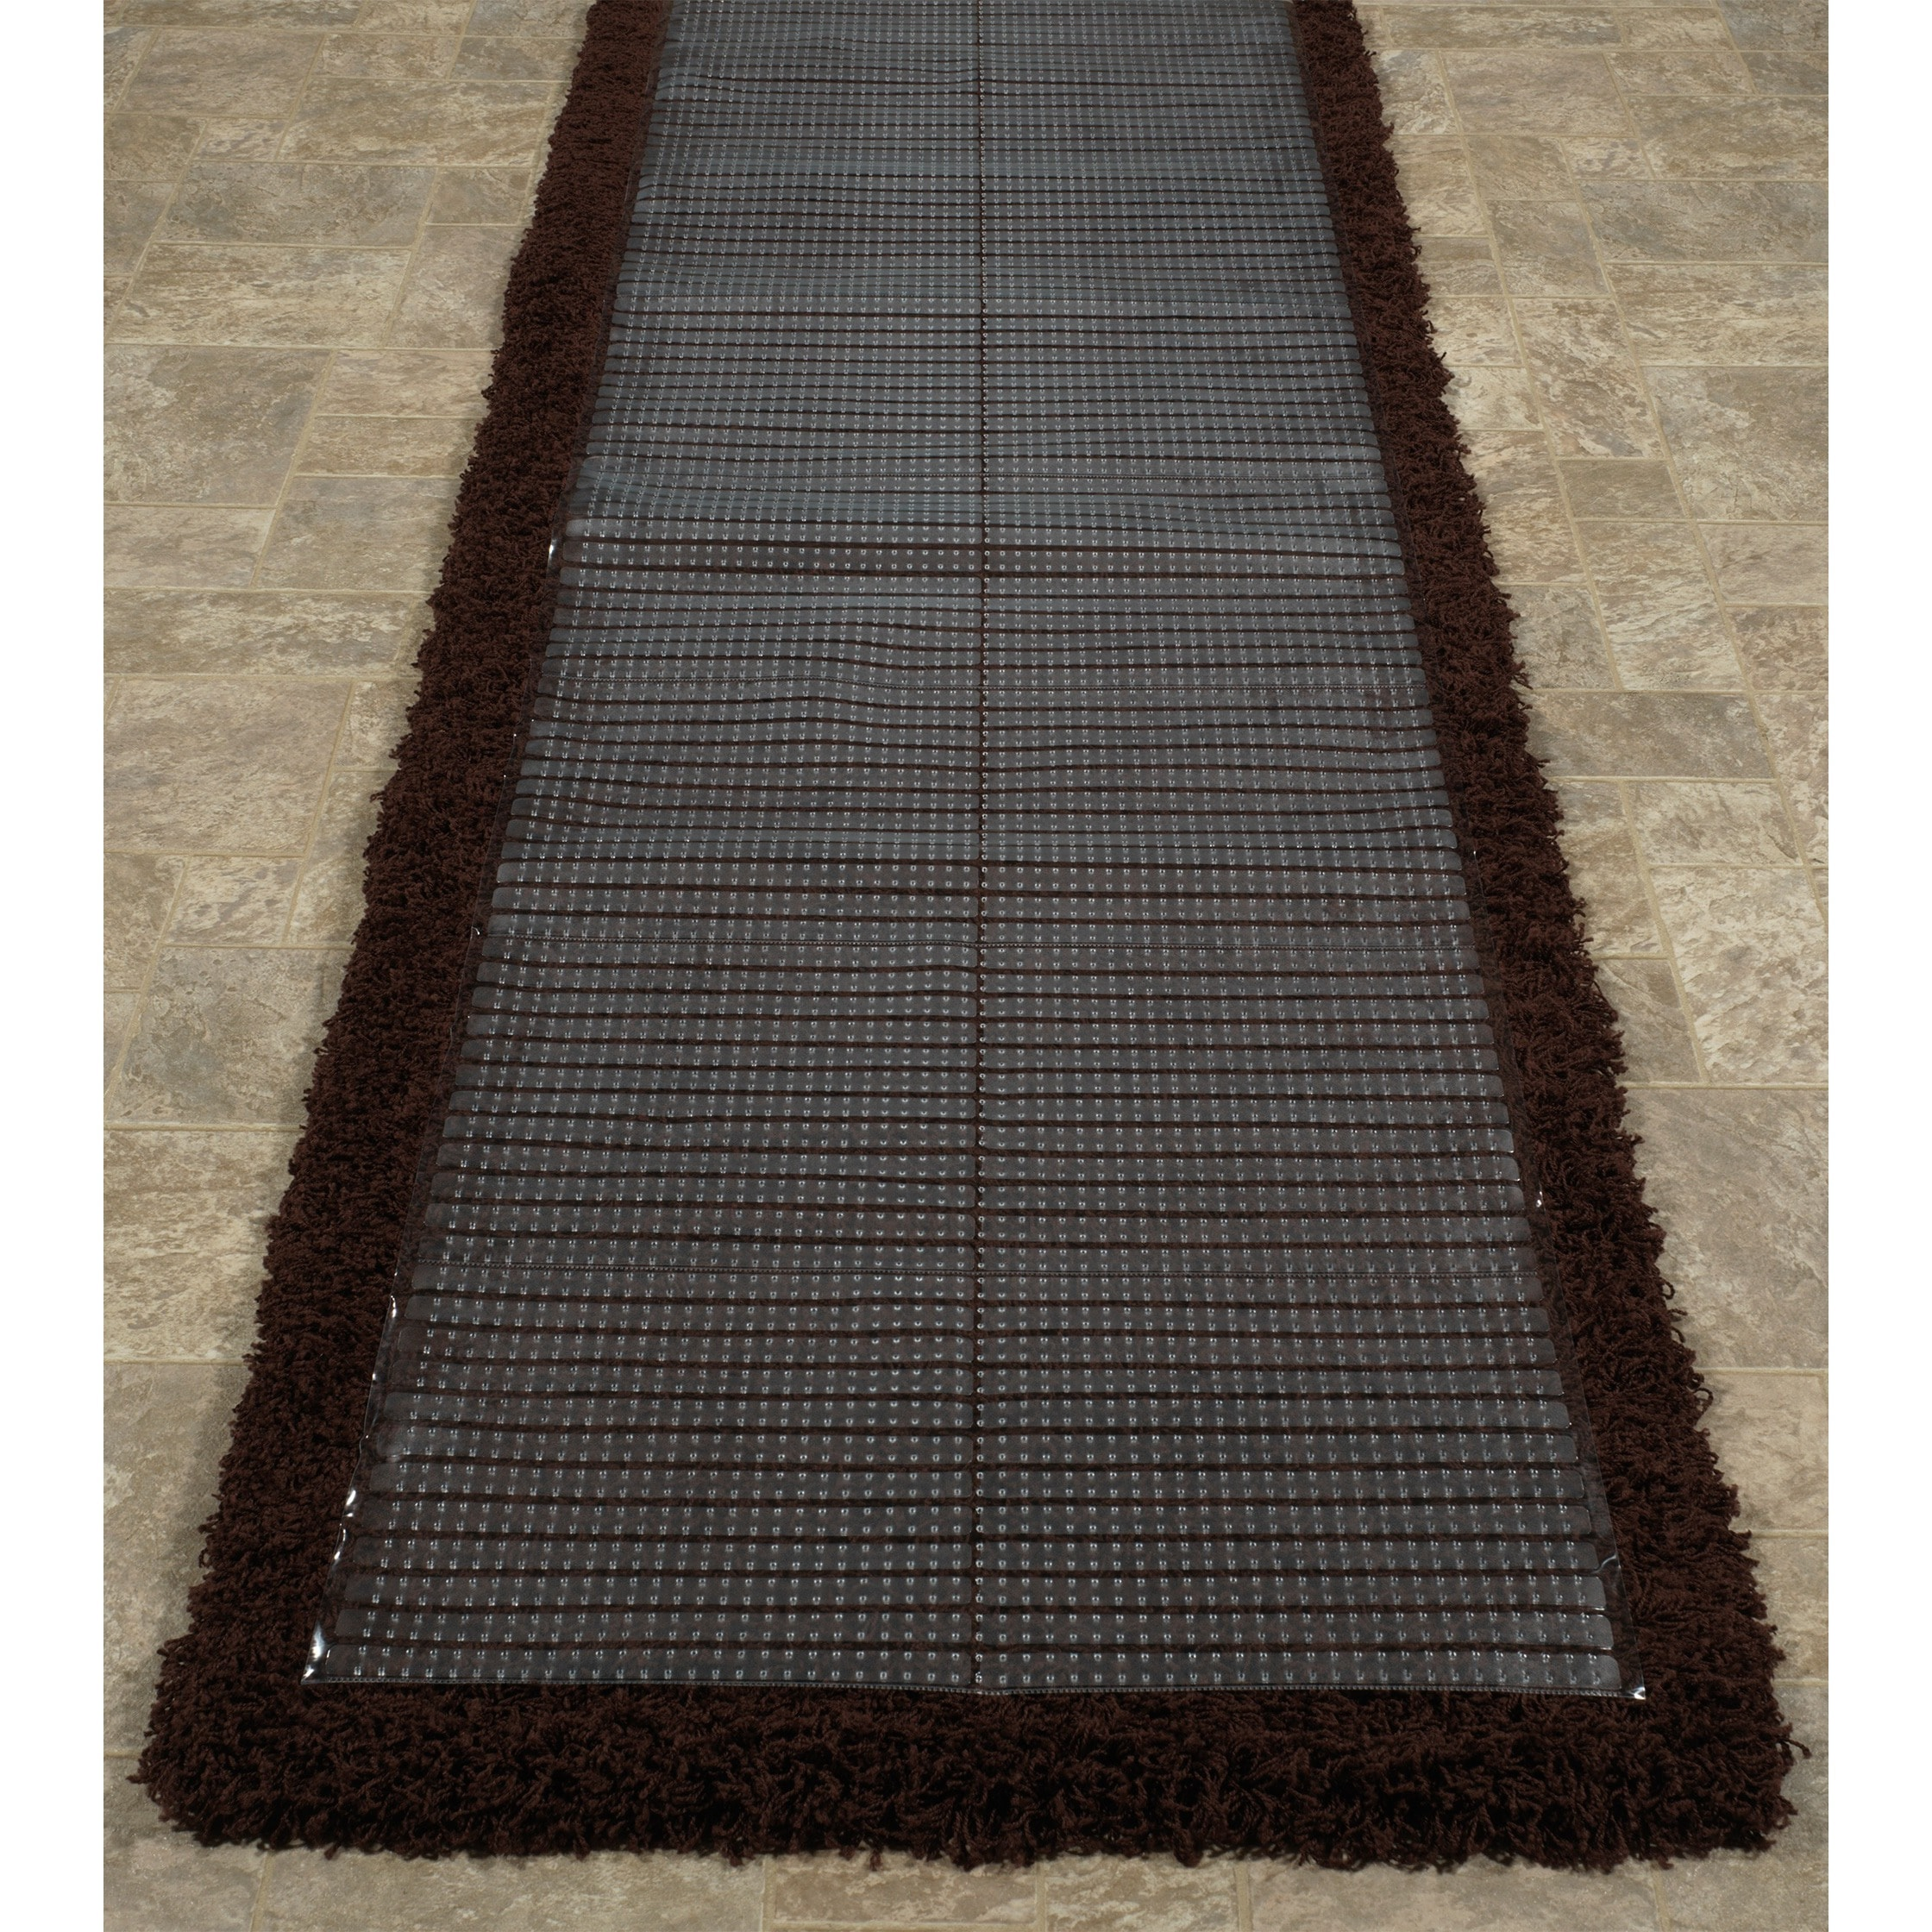 protector floor spa lay uk available bestway lazy ground mats z at aftersales mat